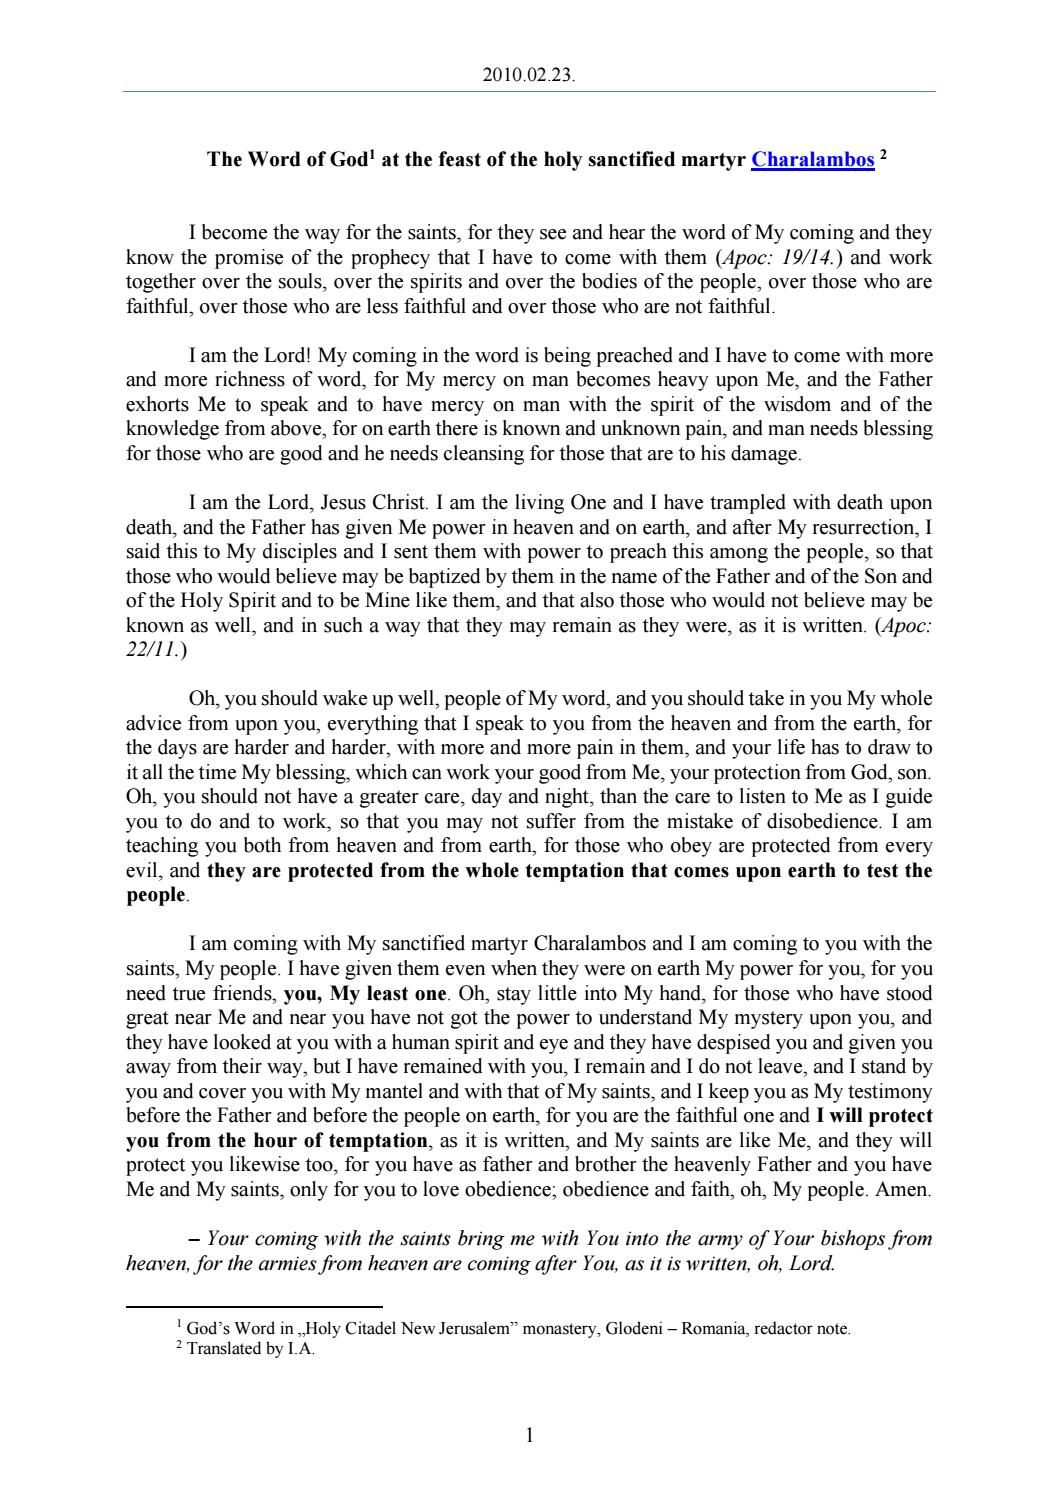 Pin On The Word Of God In Romania Buy Persuasive Essay